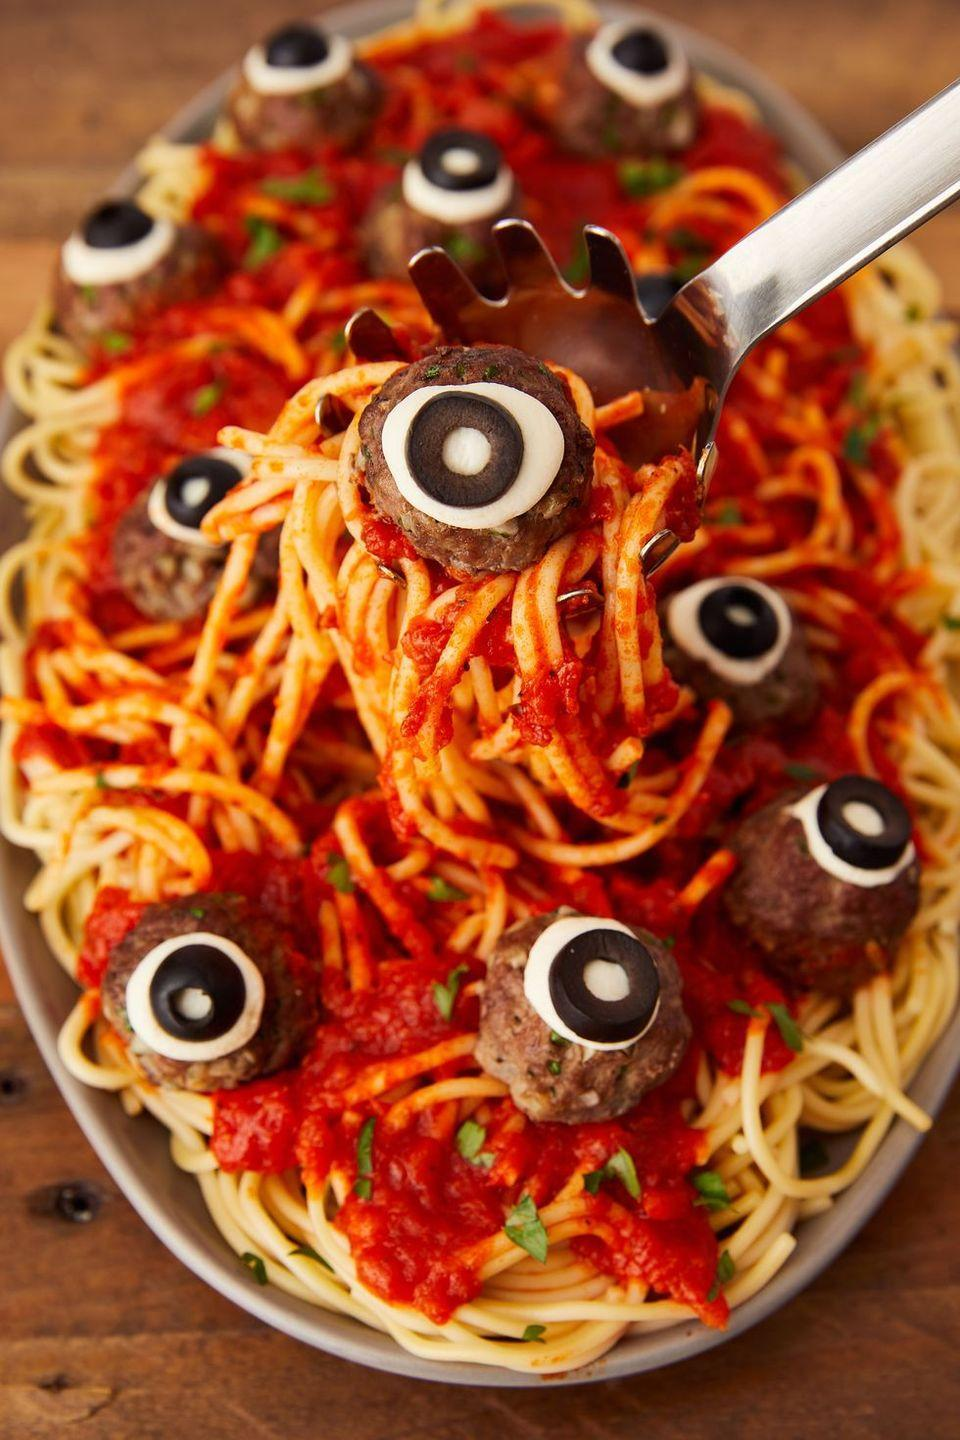 """<p>This isn't any old pasta, it's eyeball pasta! Serve this easy-to-make and perfectly spooky recipe on Halloween to witness squeals of delight from the kids. </p><p><strong><em>Get the recipe at <a href=""""https://www.delish.com/cooking/recipe-ideas/a23712888/eyeball-pasta-halloween-dinner-recipe/"""" rel=""""nofollow noopener"""" target=""""_blank"""" data-ylk=""""slk:Delish"""" class=""""link rapid-noclick-resp"""">Delish</a>. </em></strong></p>"""